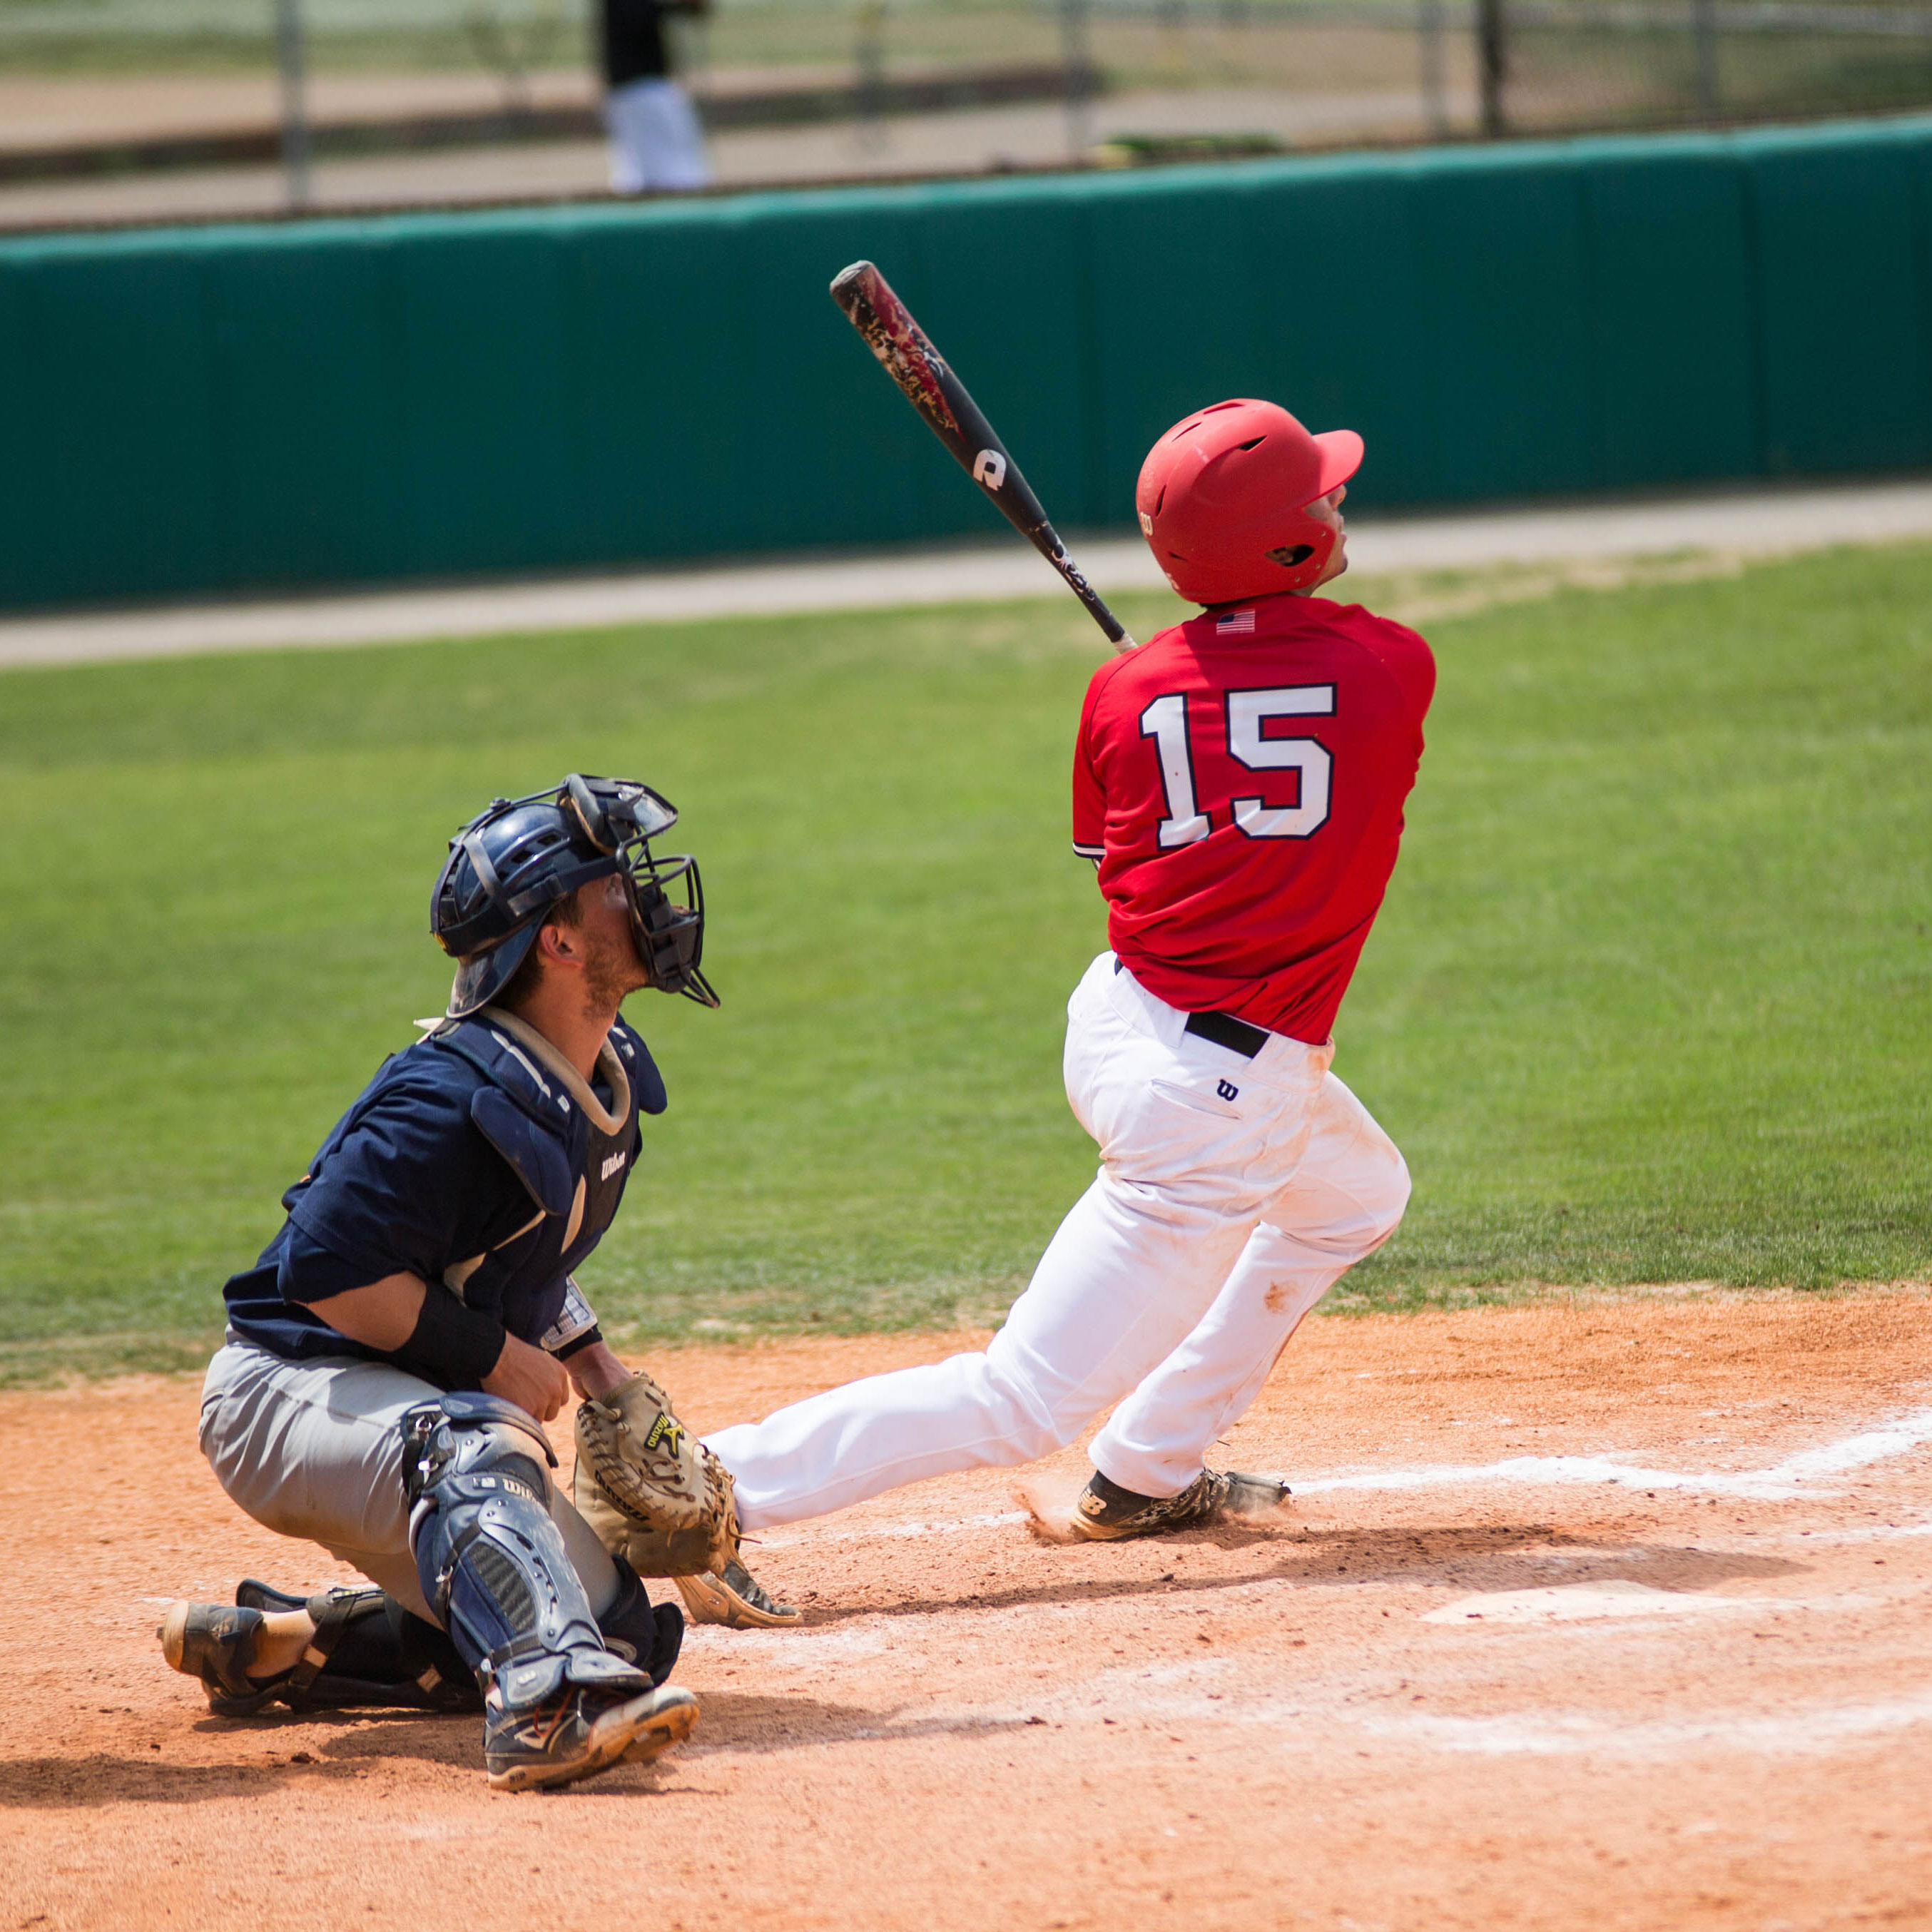 APSU baseball player hitting the ball